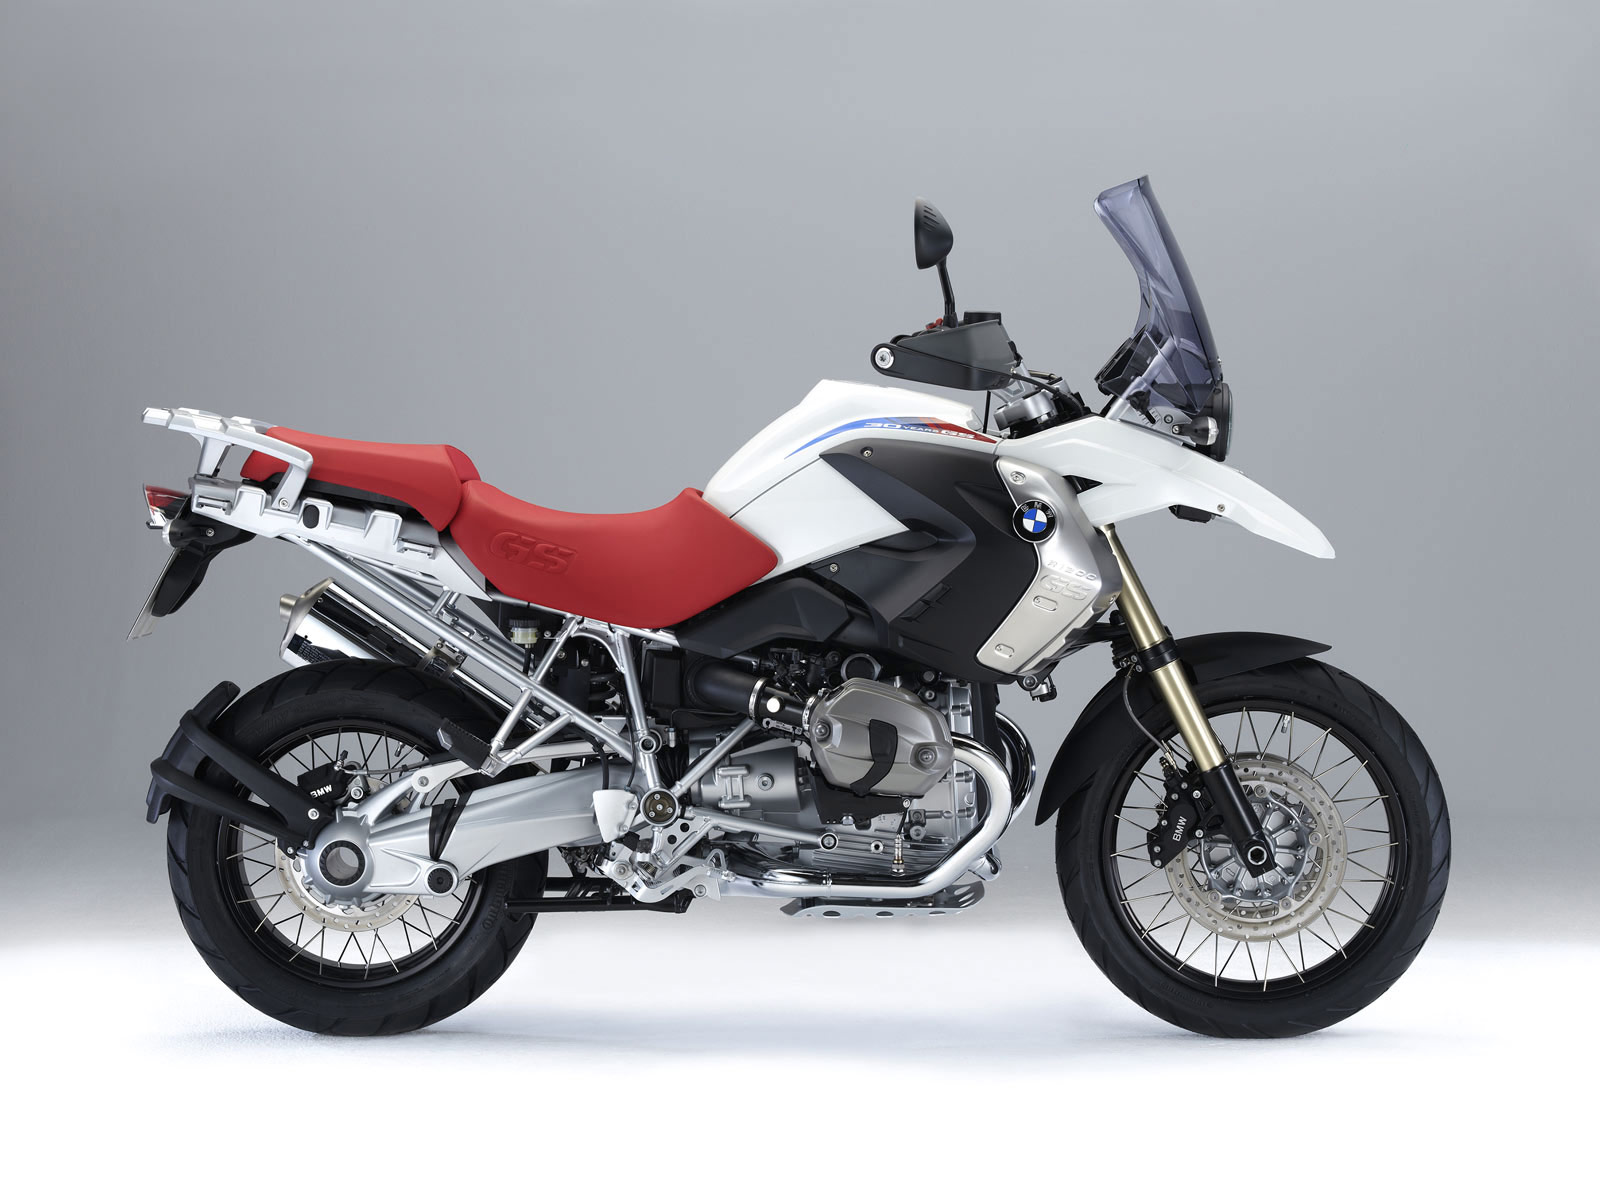 bmw f 1200 gs 30 years gs 2010 wallpapers insurance info. Black Bedroom Furniture Sets. Home Design Ideas